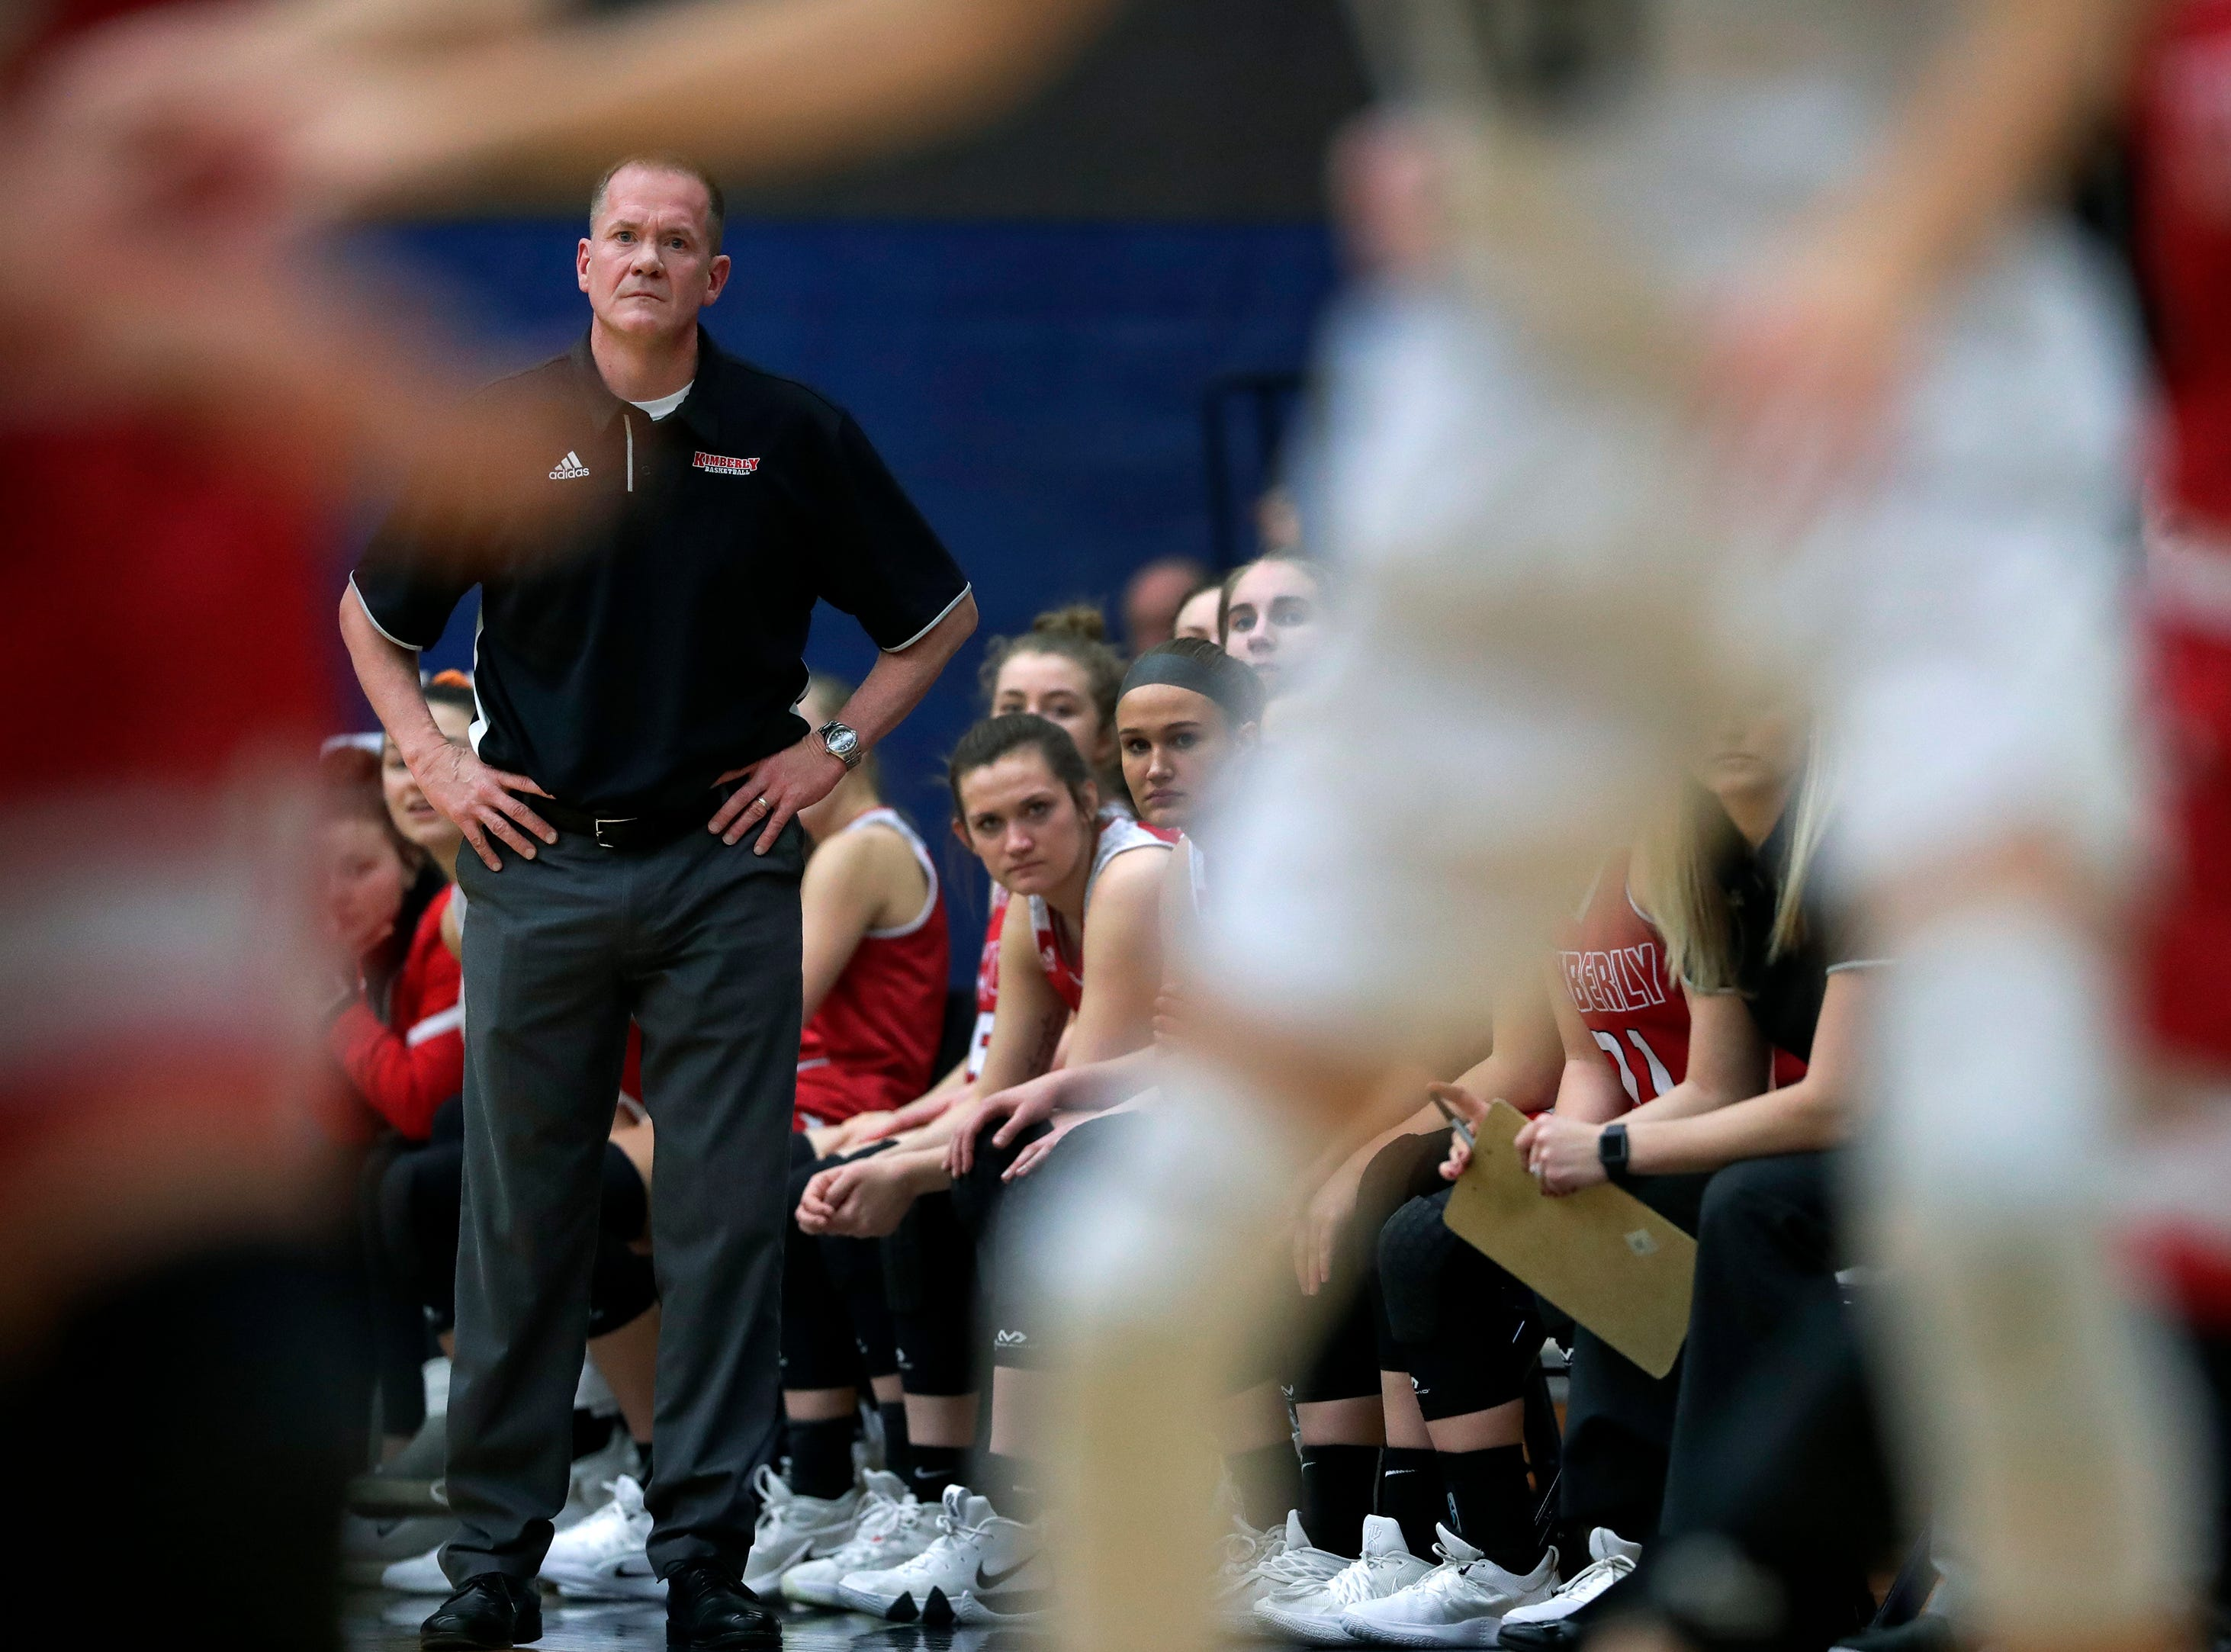 Kimberly High School's coach Troy Cullen keeps his eyes on the action against Appleton North High School during their girls basketball game Tuesday, January 8, 2019, in Appleton, Wis. Dan Powers/USA TODAY NETWORK-Wisconsin